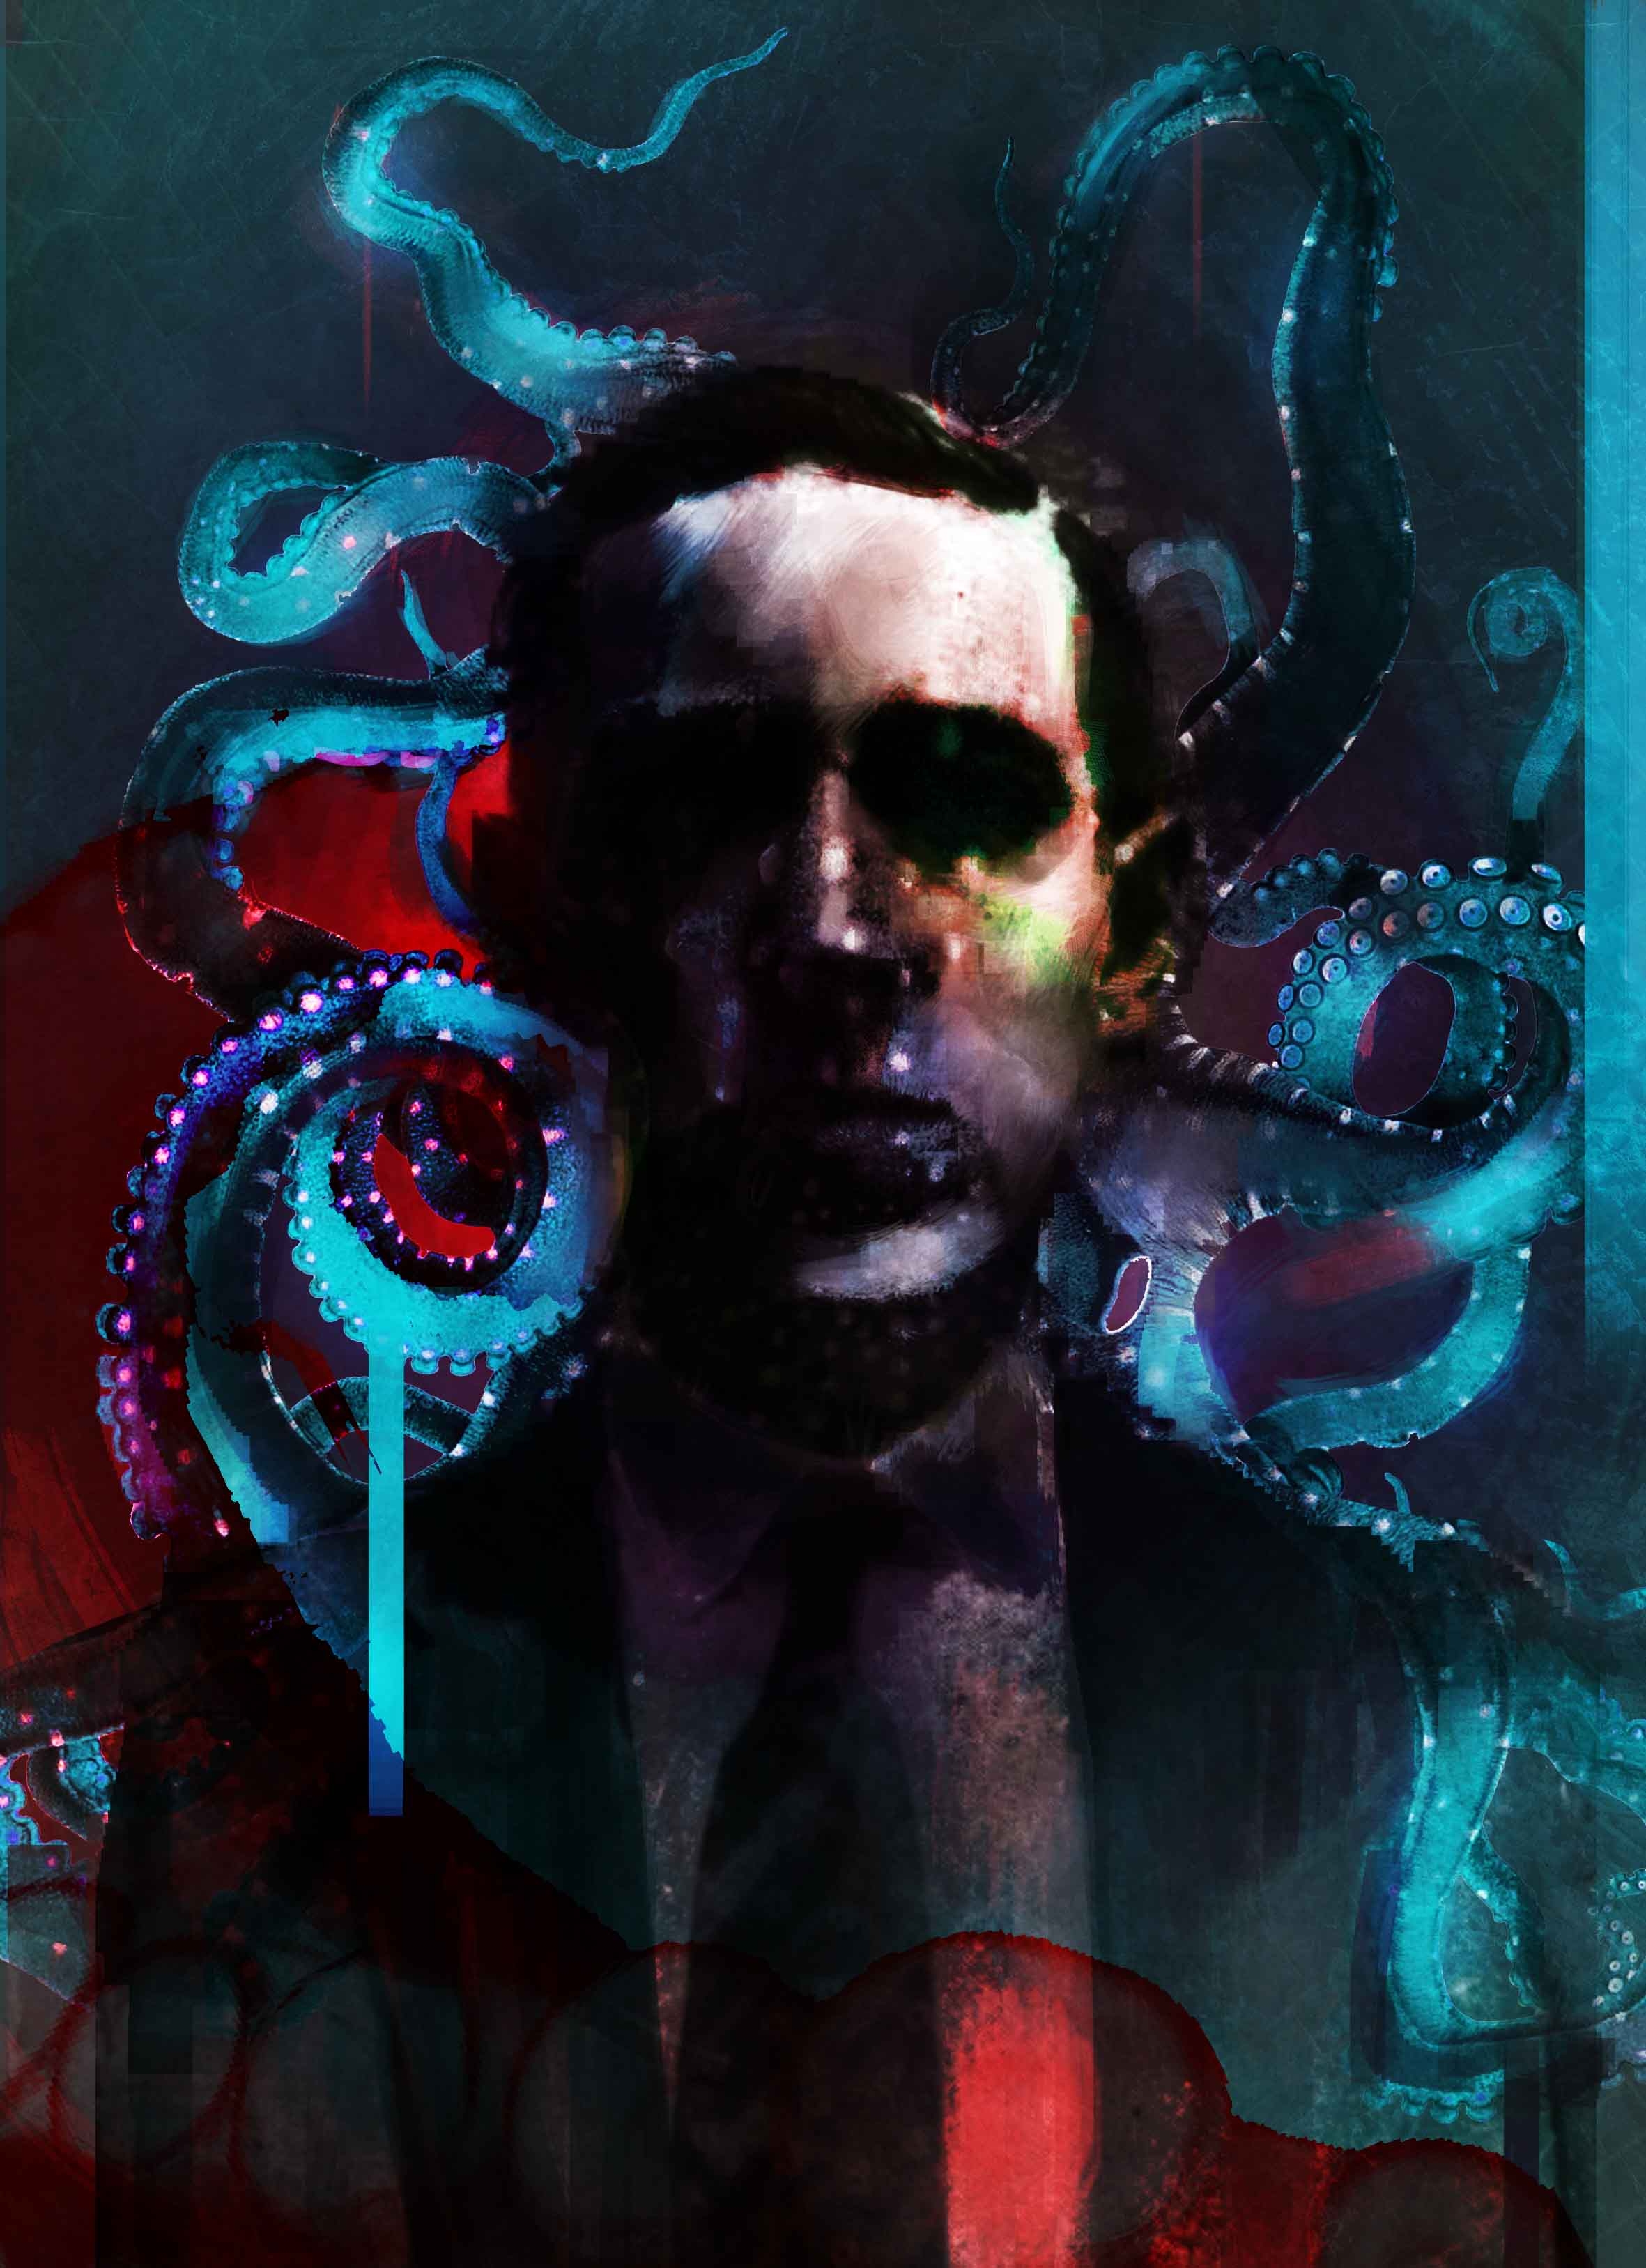 Homage to Lovecraft